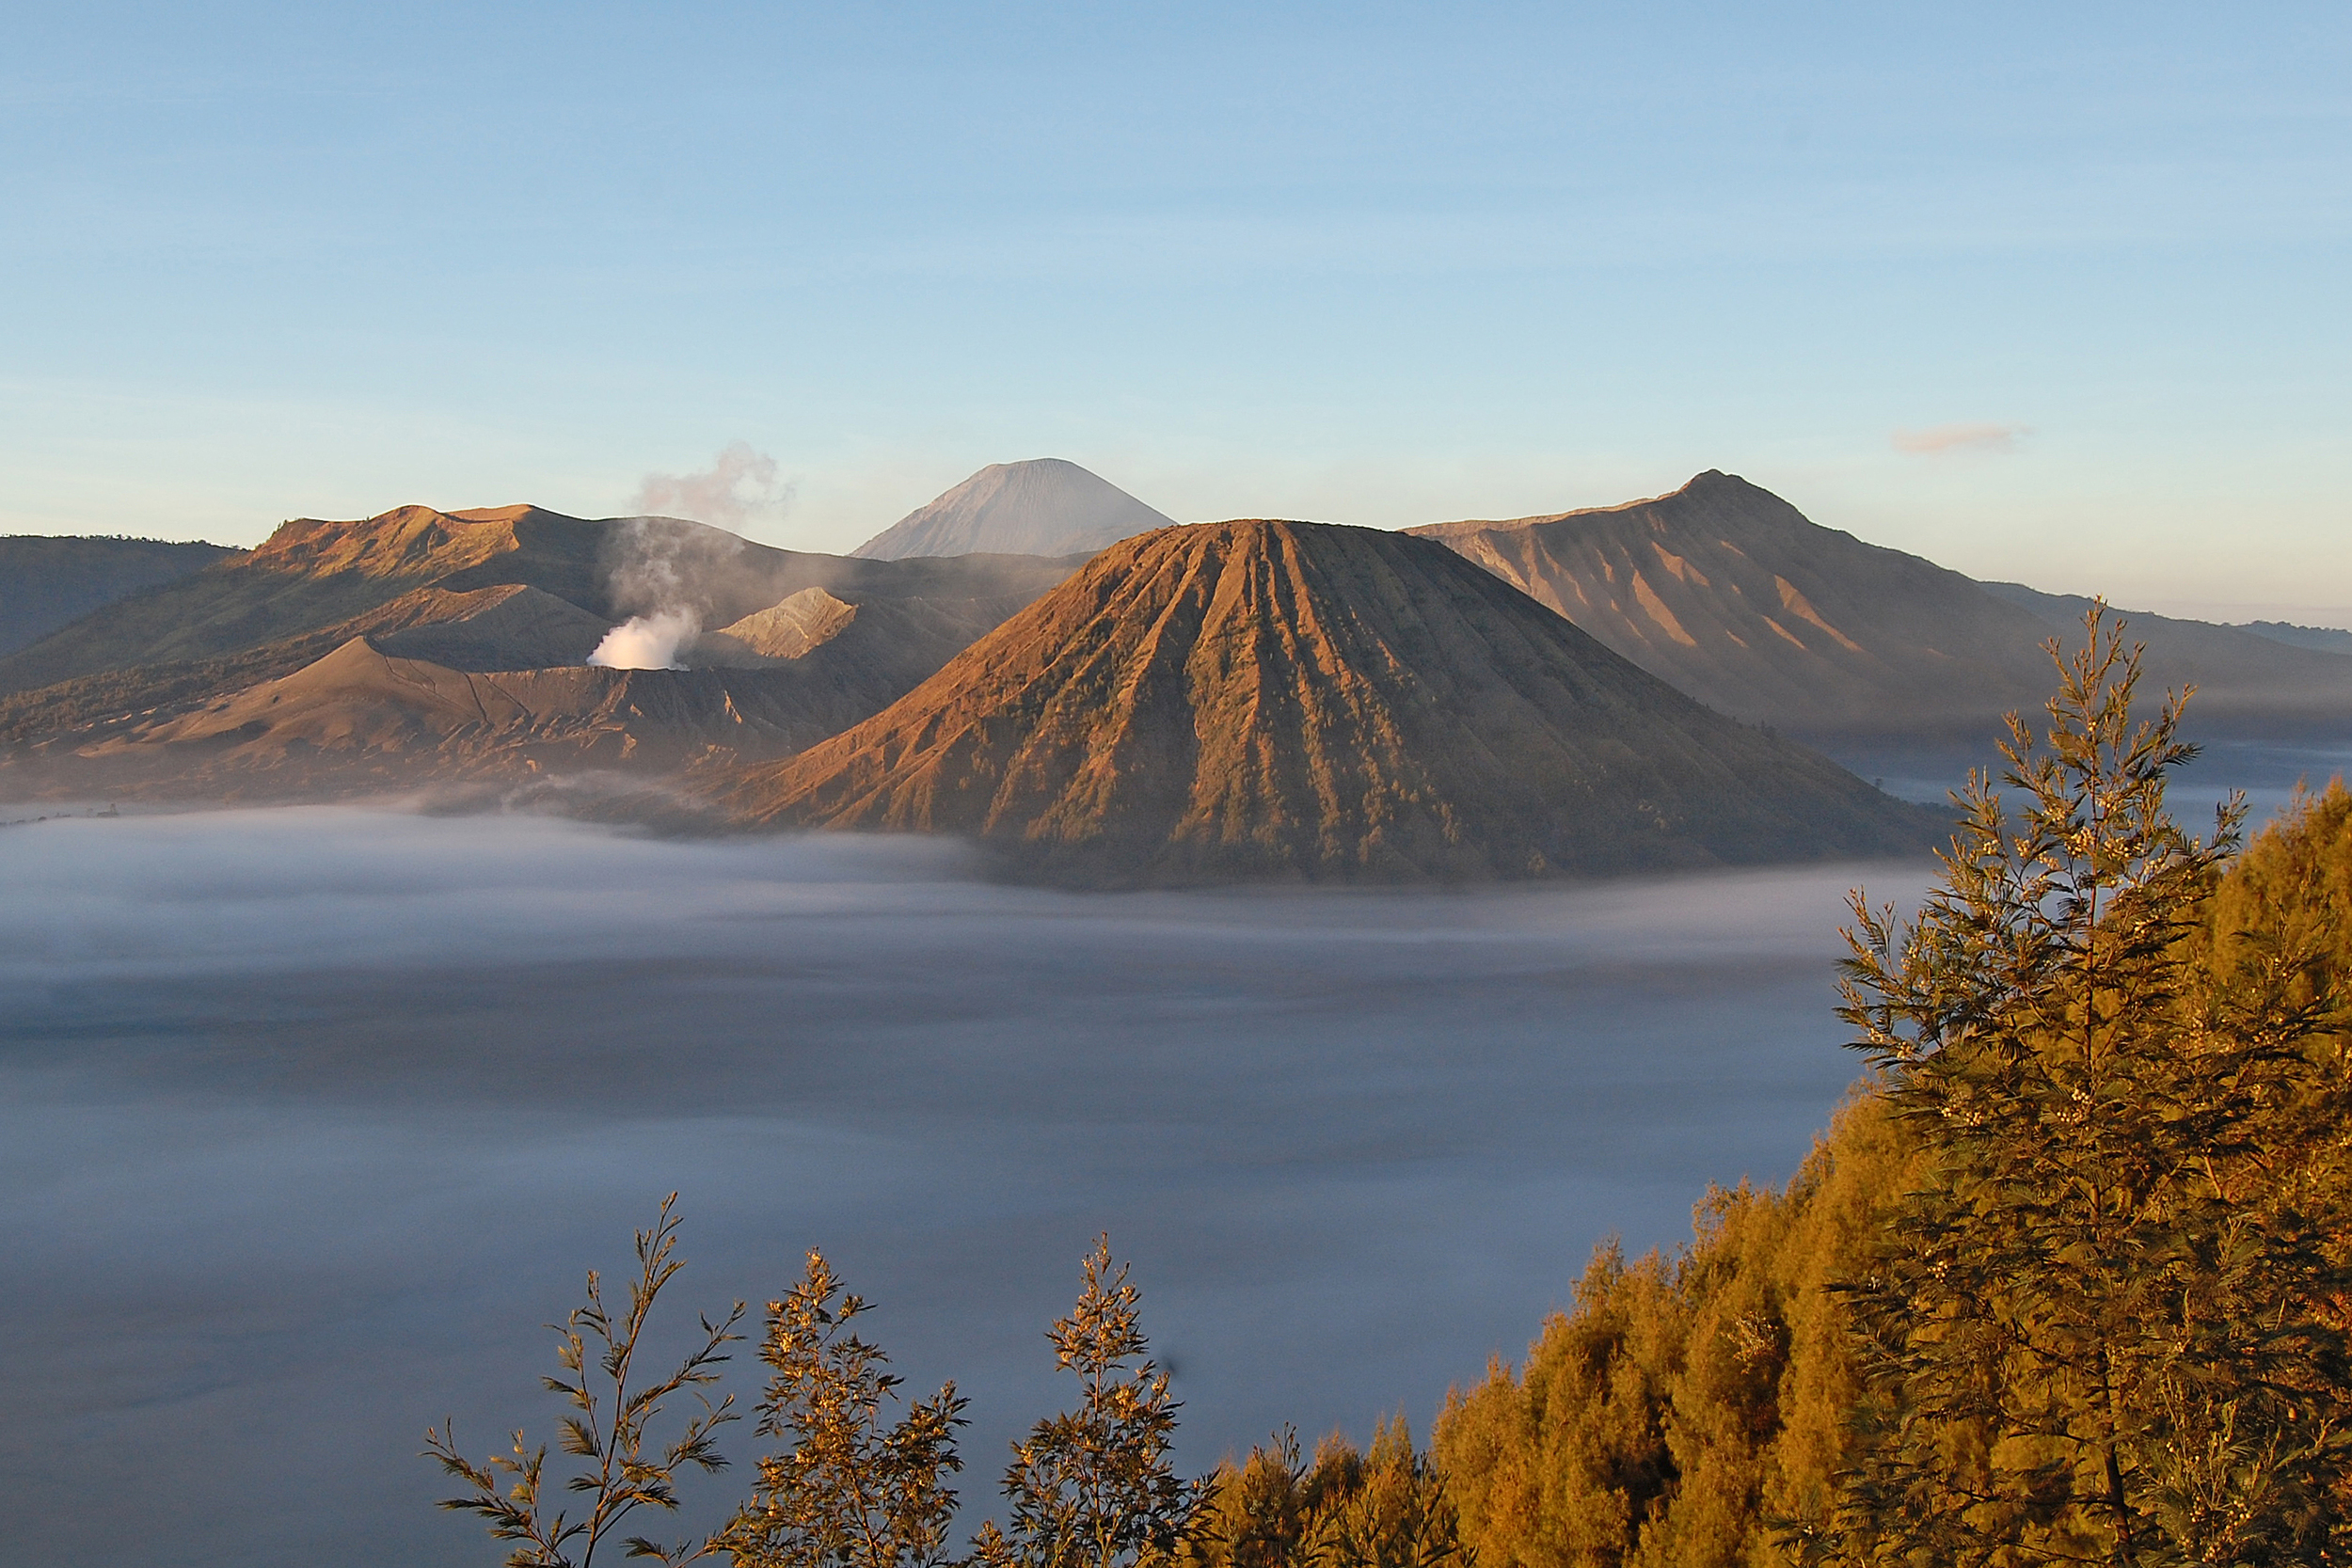 The peak of mount bromo above the clouds